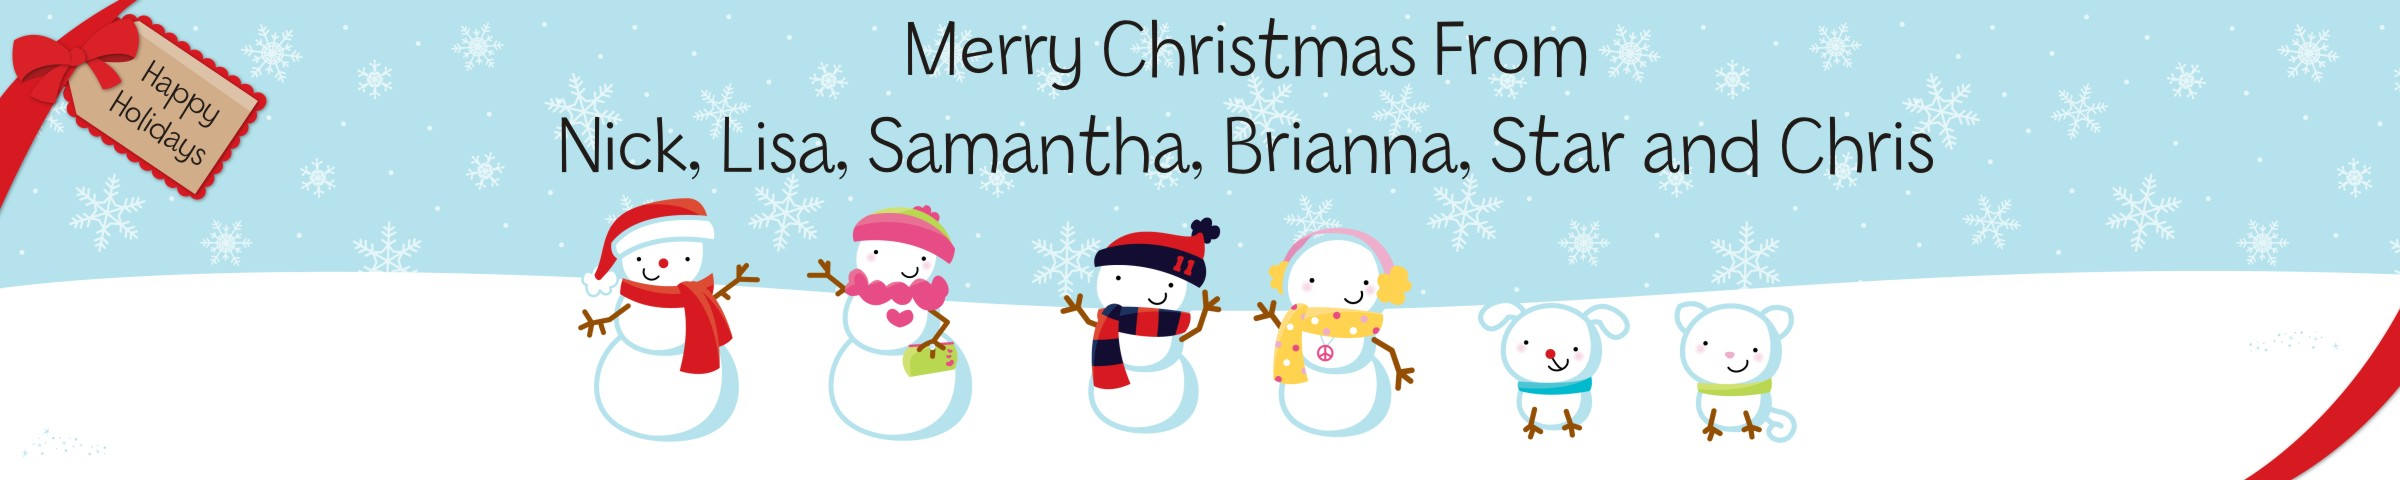 Snowman Family with Snowflakes - Personalized Christmas Banners